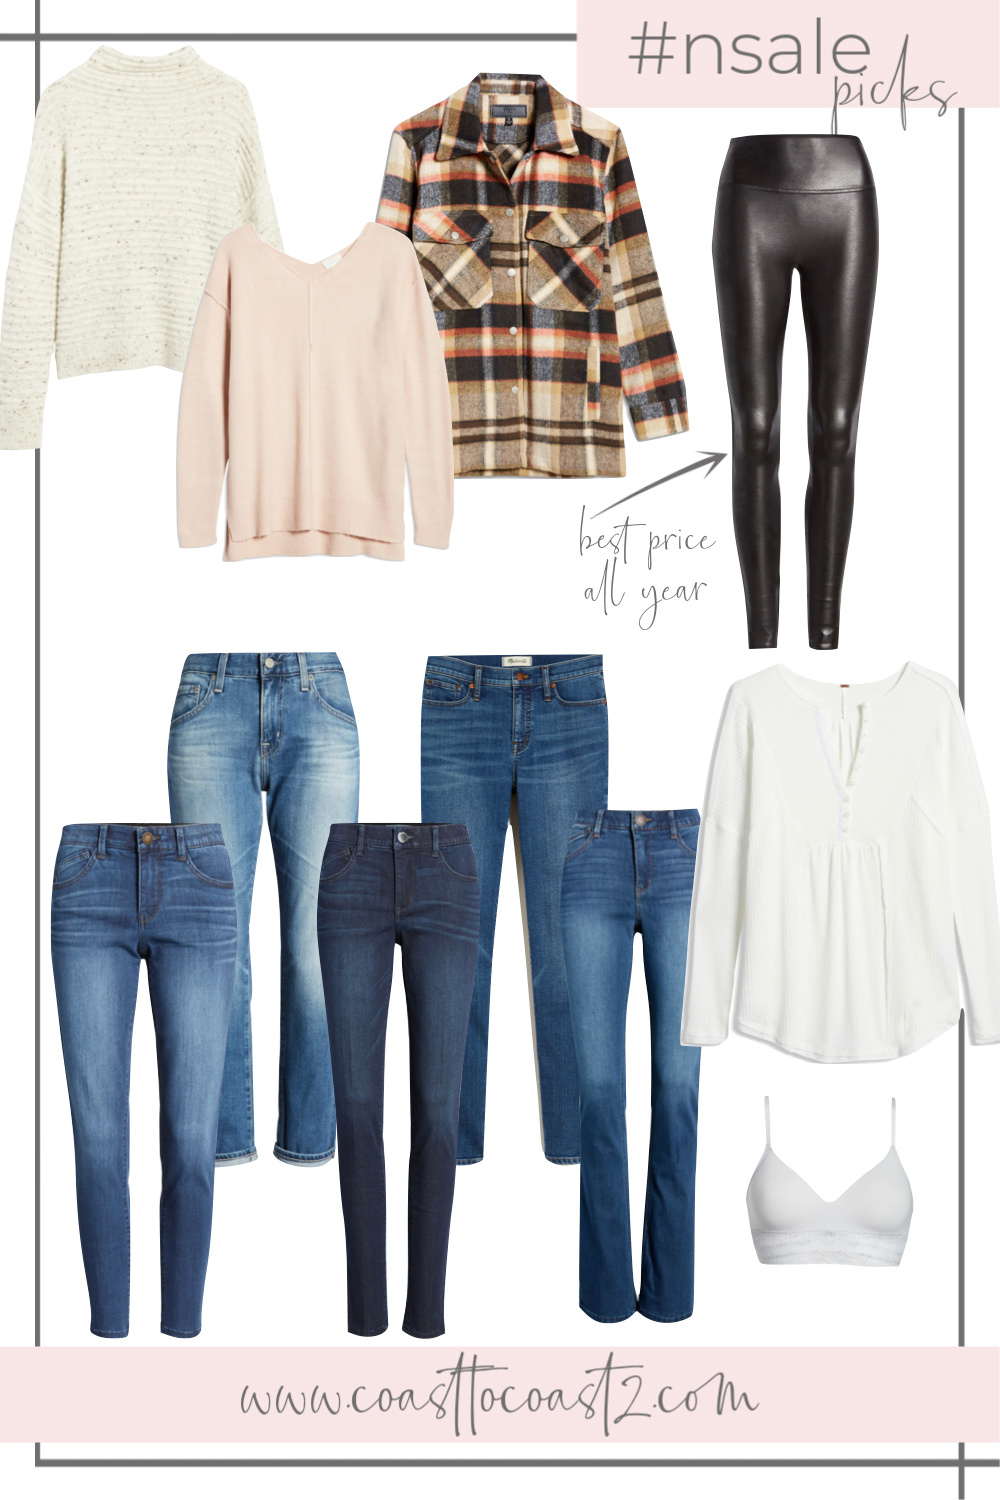 Nordstrom Anniversary Sale clothing